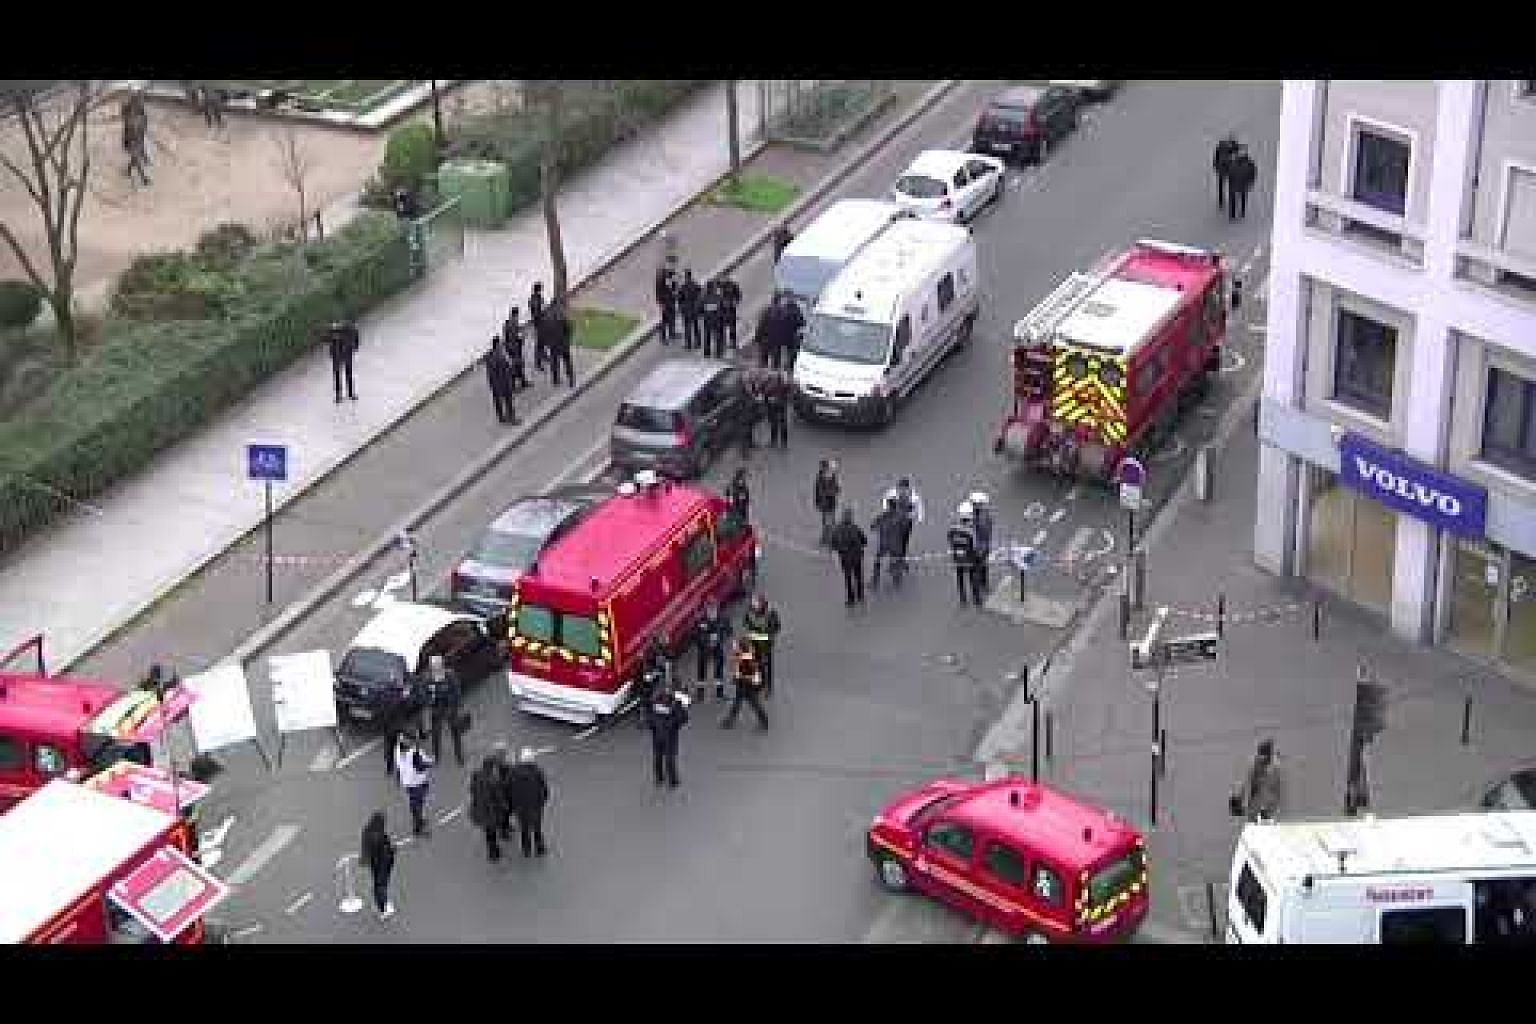 Charlie Hebdo trial opens five years after attack